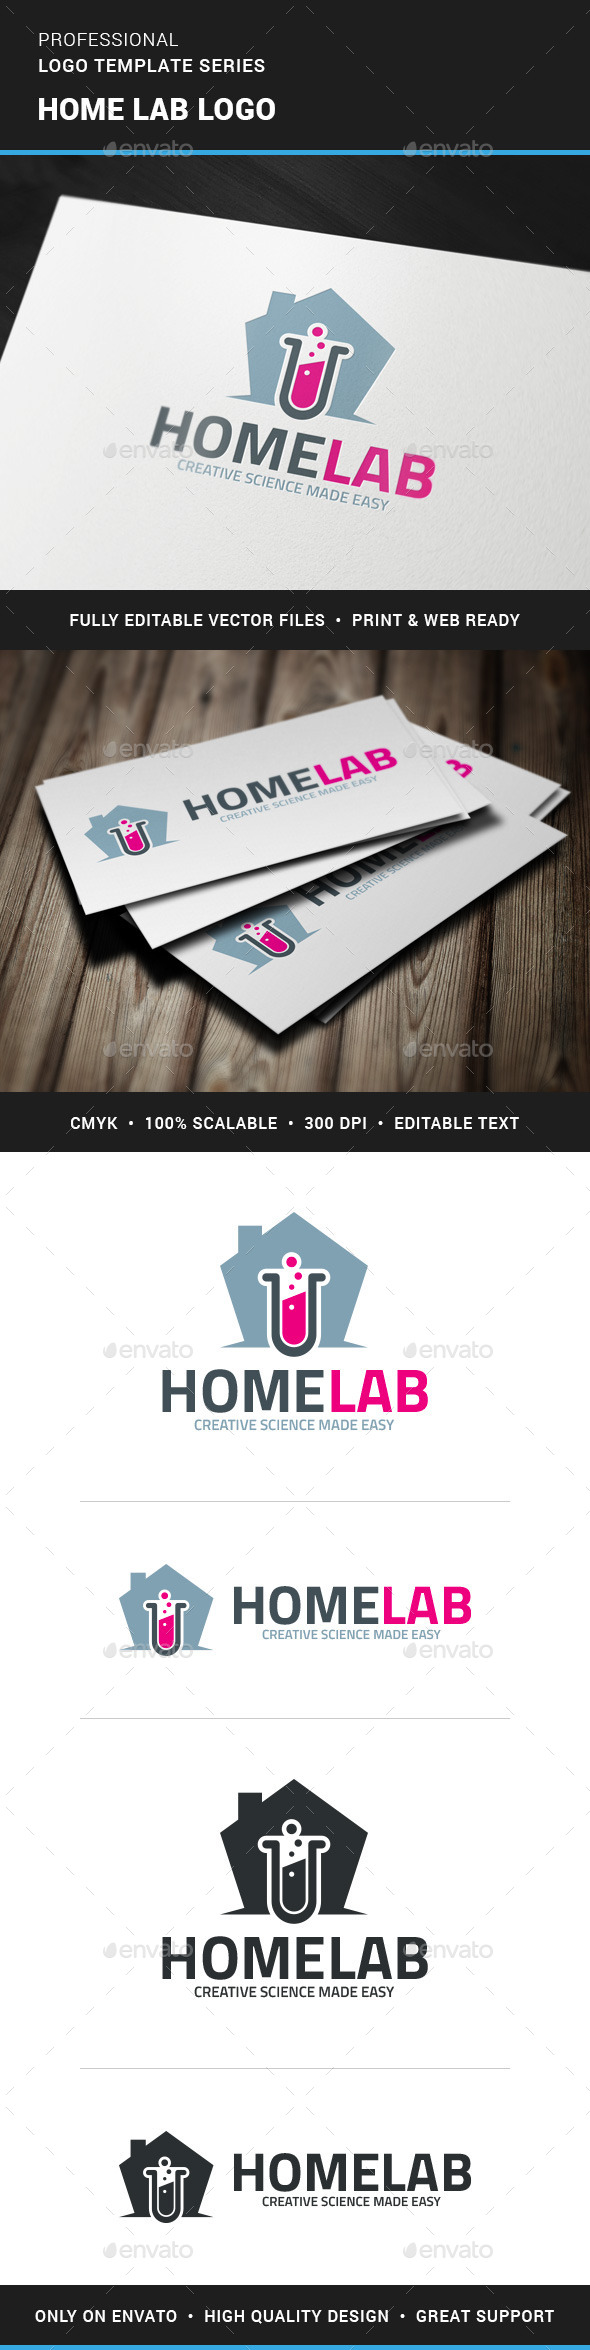 Home Lab Logo Template - Objects Logo Templates